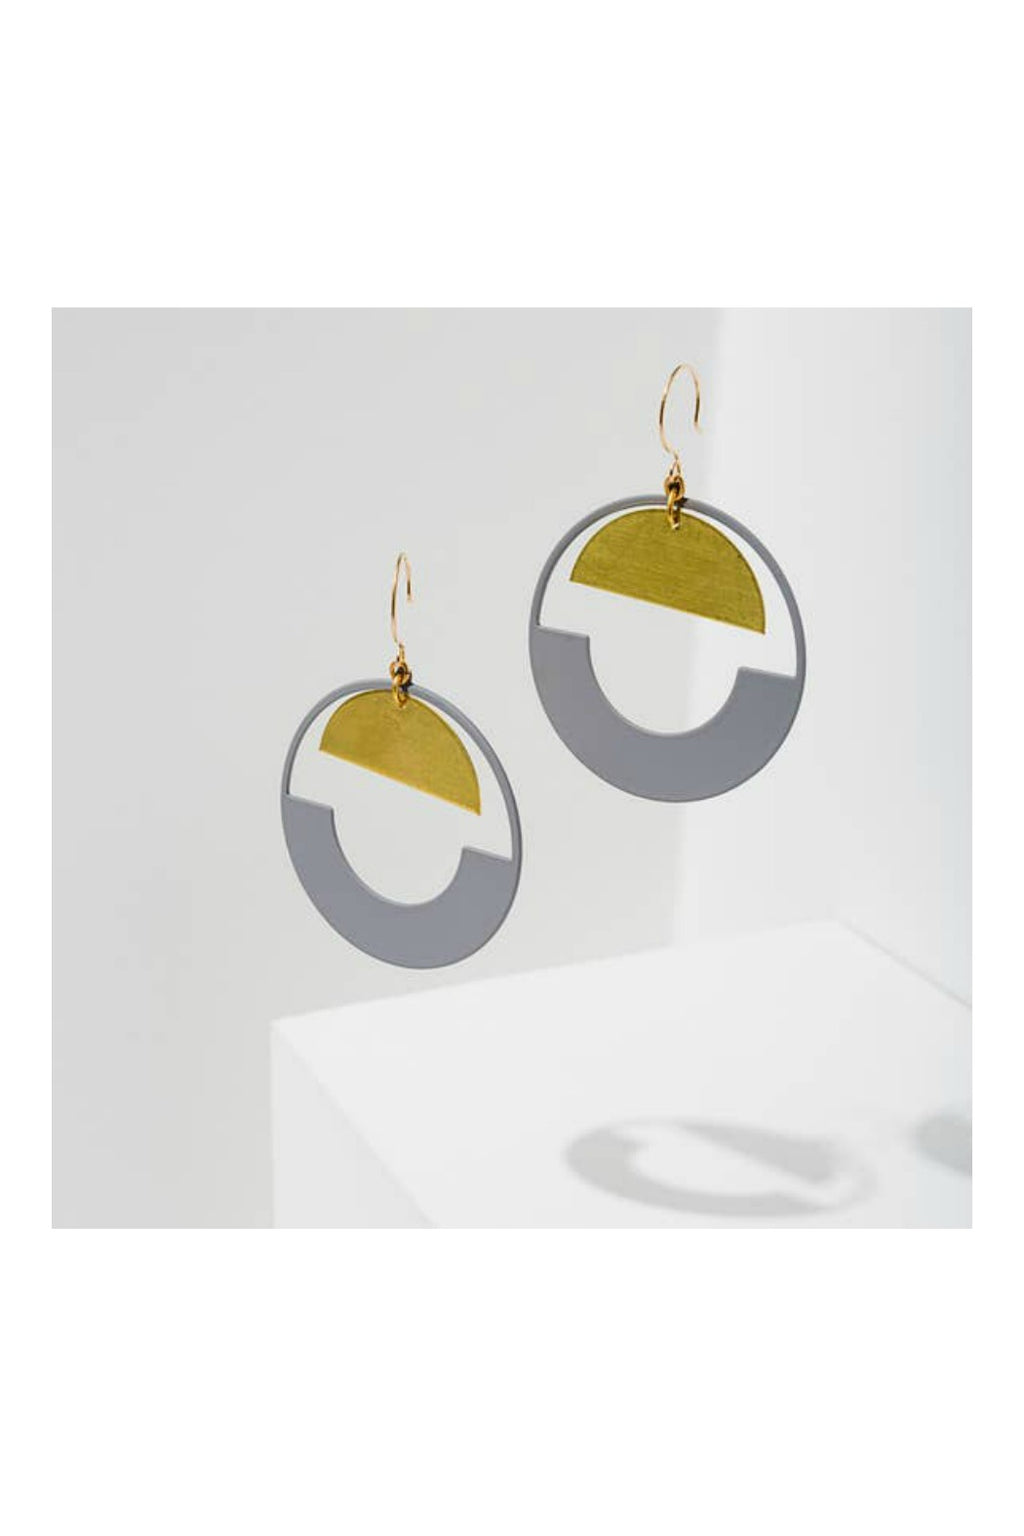 Larissa Loden Baltic Hoop Earrings - Grey